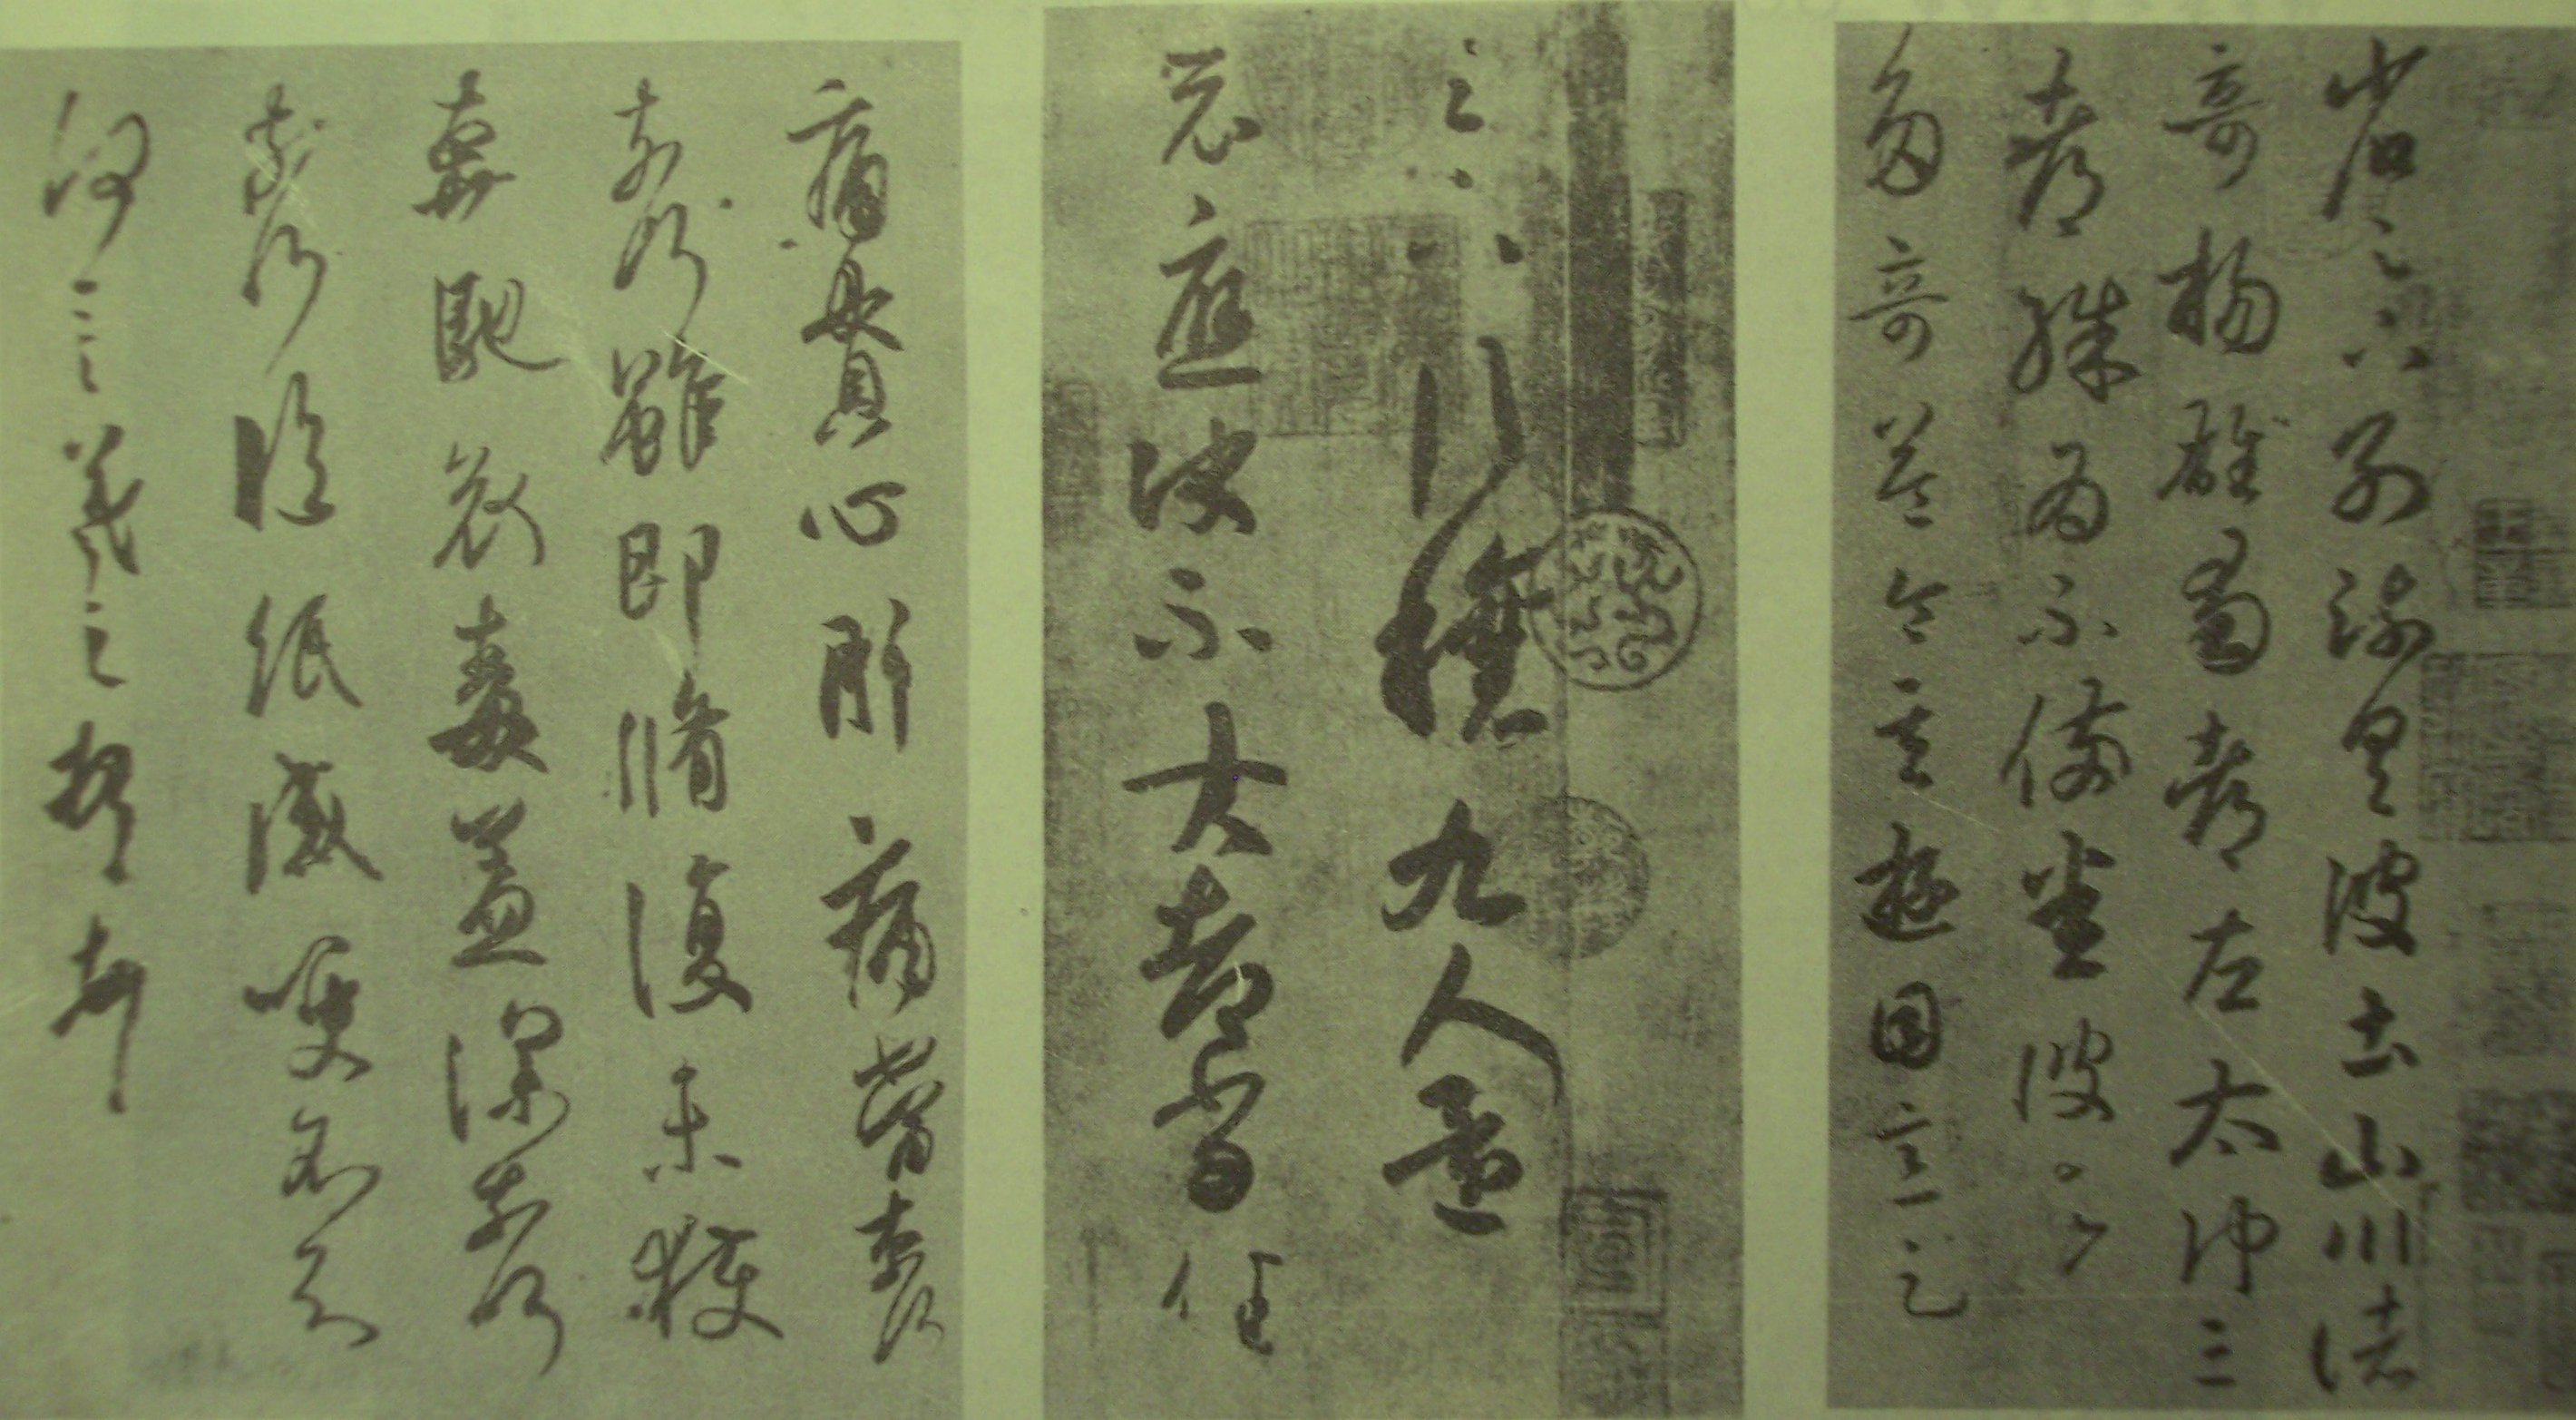 the influence that hsi yu chi essay Dream of the red chamber outline (pinyin [p/y], honglou meng wade louise, gender imperatives in honglou meng: baoyu's bisexuality, chinese literature: essays, articles, and plaks, andrew, allegory in hsi-yu chi and hung-lou meng, in plaks, ed, chinese narrative.